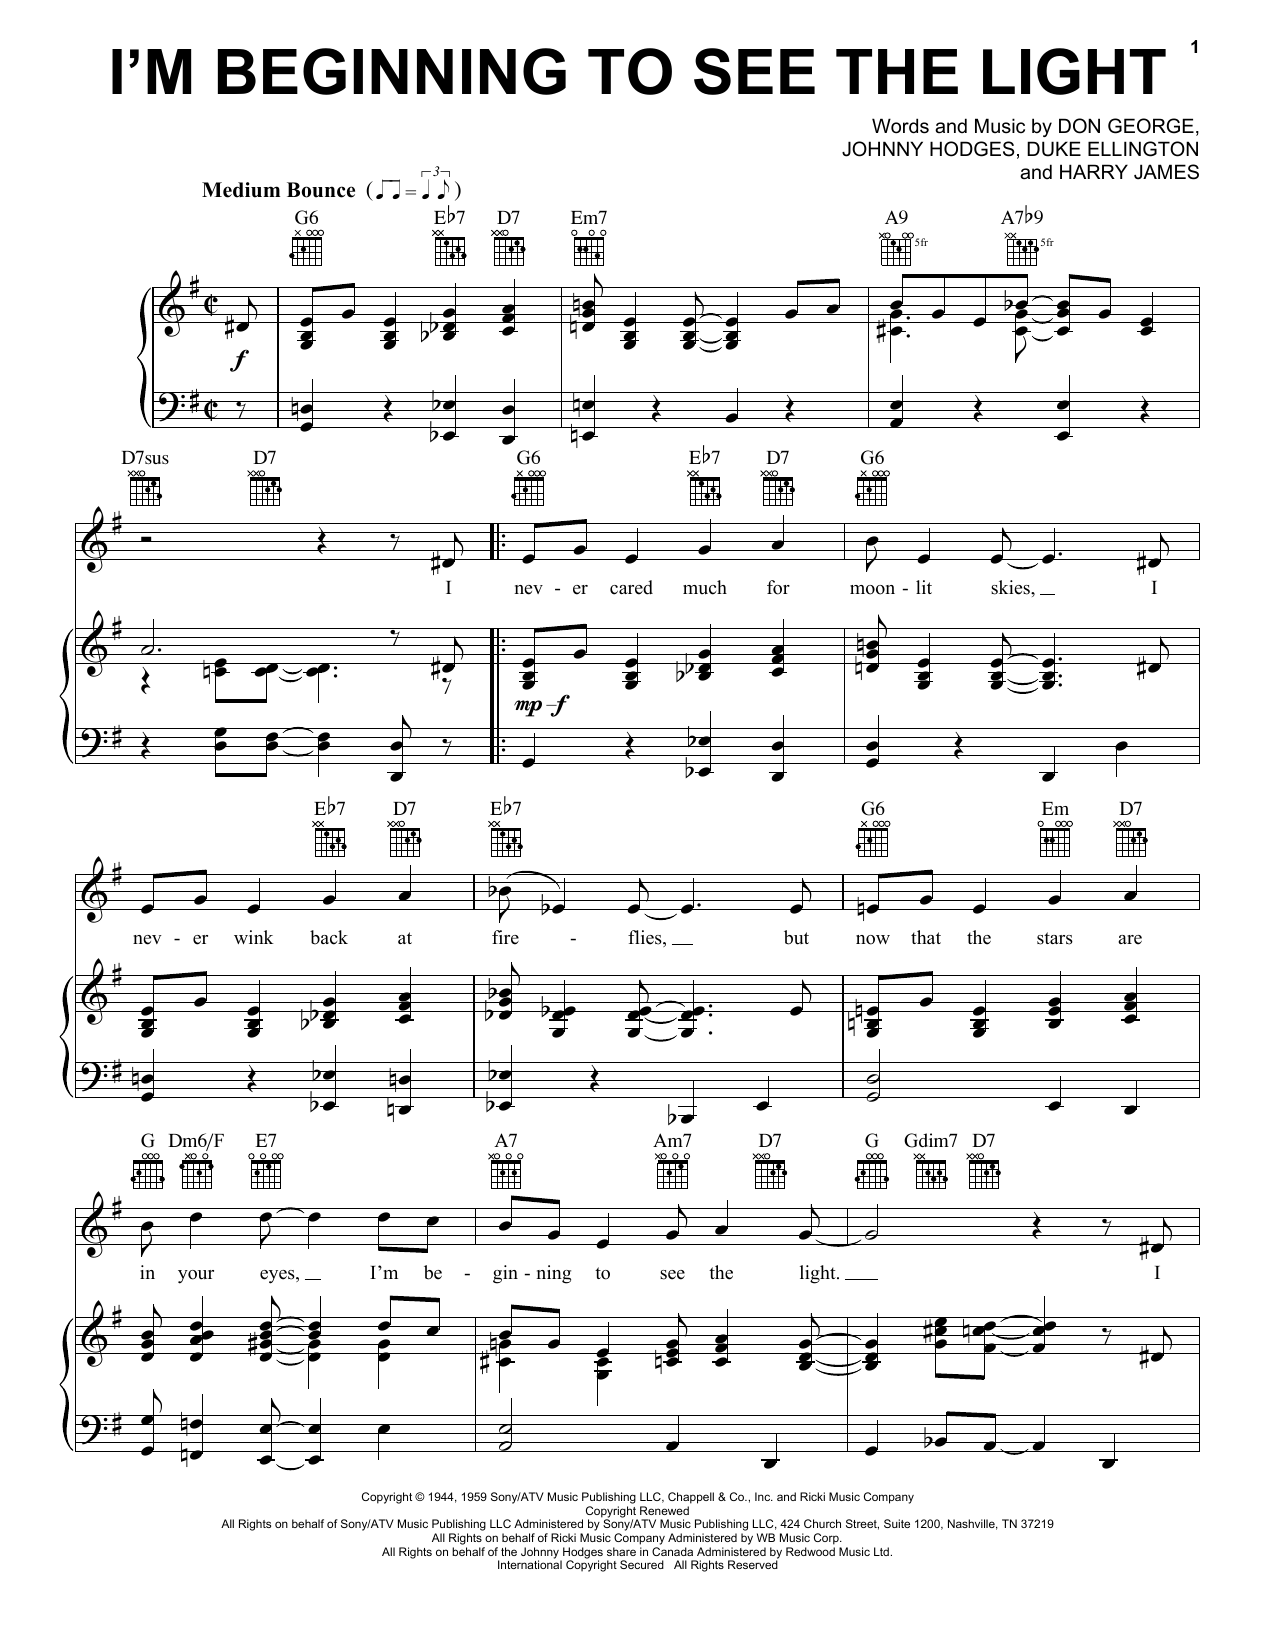 Sheet Music Digital Files To Print - Licensed Harry James Digital ...